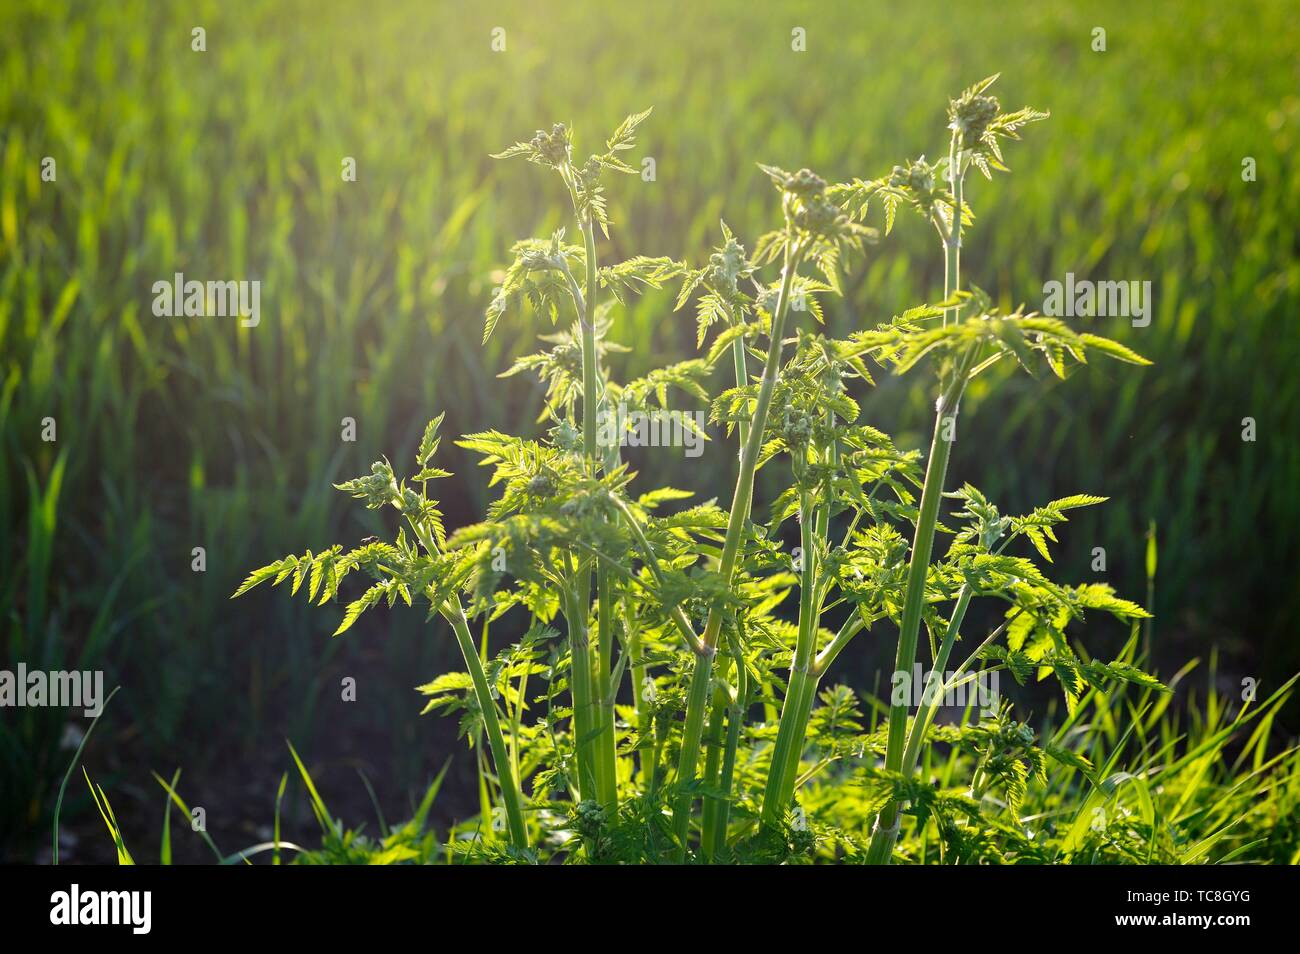 Wild chervil (Anthriscus sylvestris), Eure-et-Loir department, Centre-Val de Loire region, France, Europe. - Stock Image